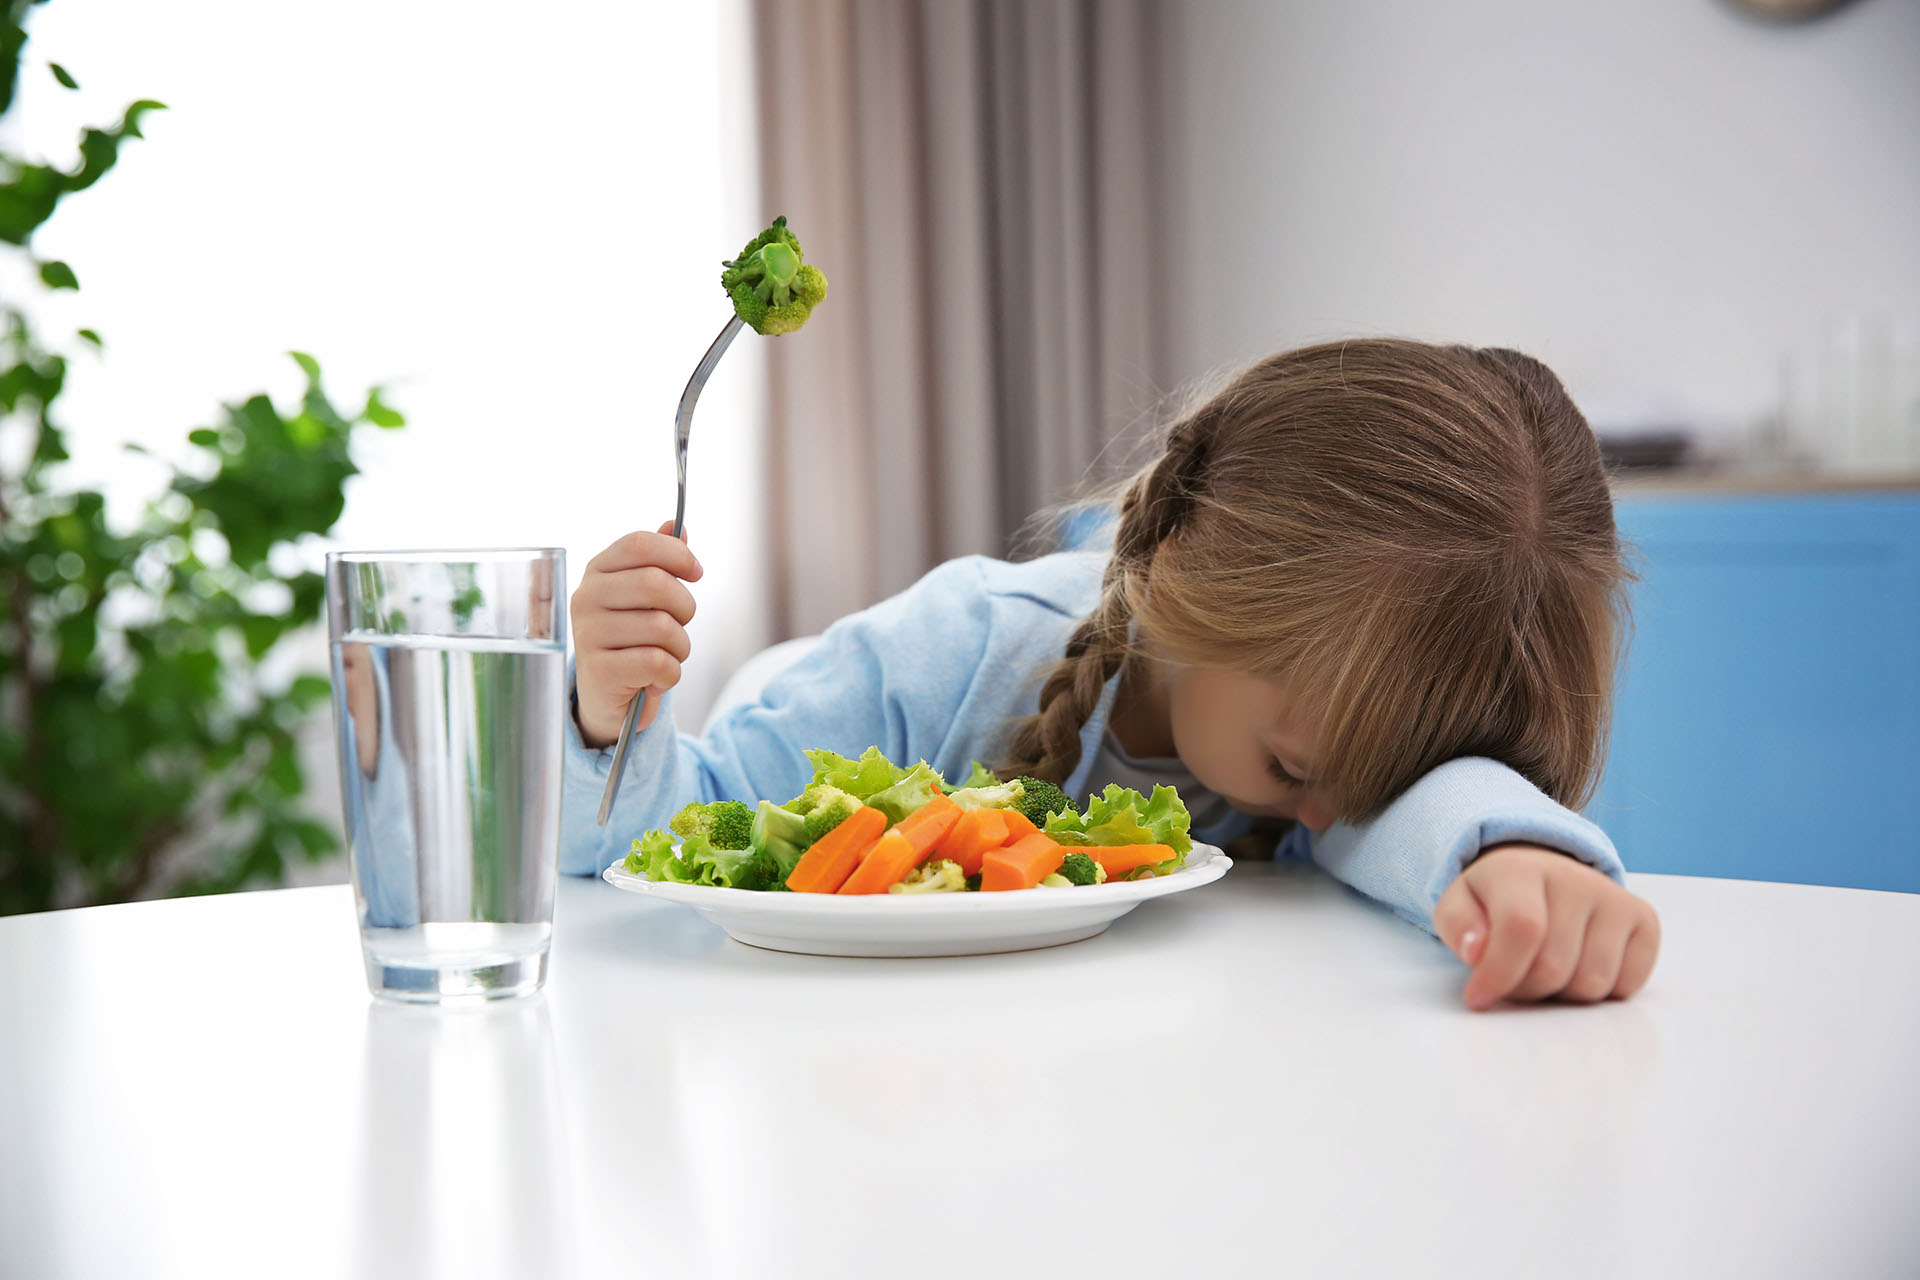 What to do when your kids won't eat their vegetables